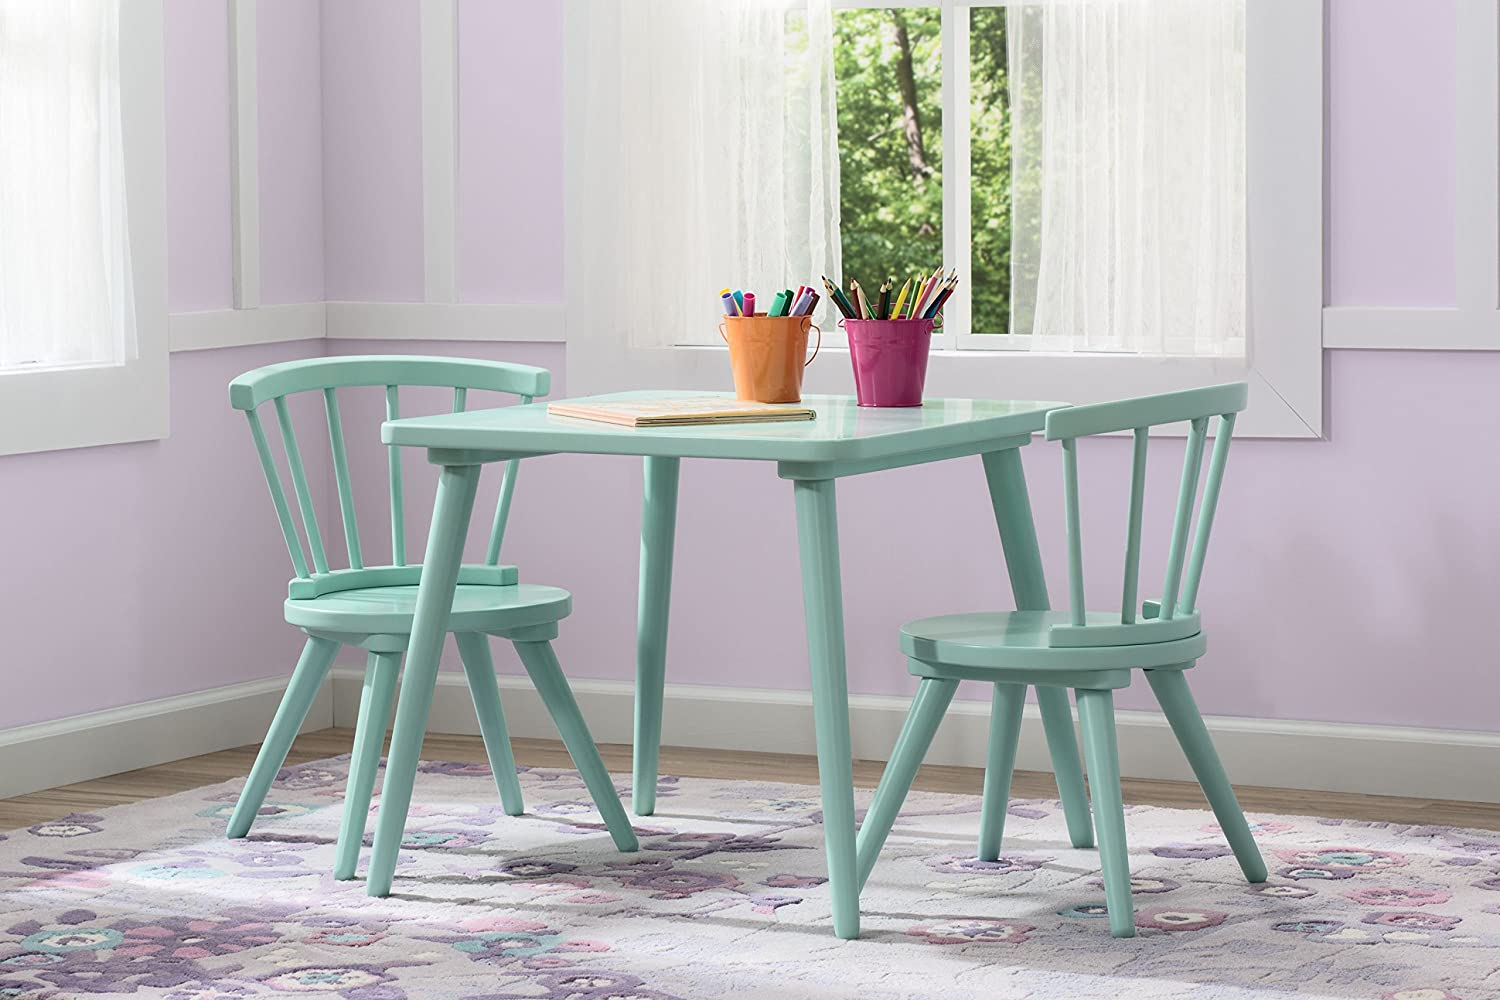 & Amazon.com: Delta Children Windsor Table \u0026 2 Chair Set Aqua: Baby